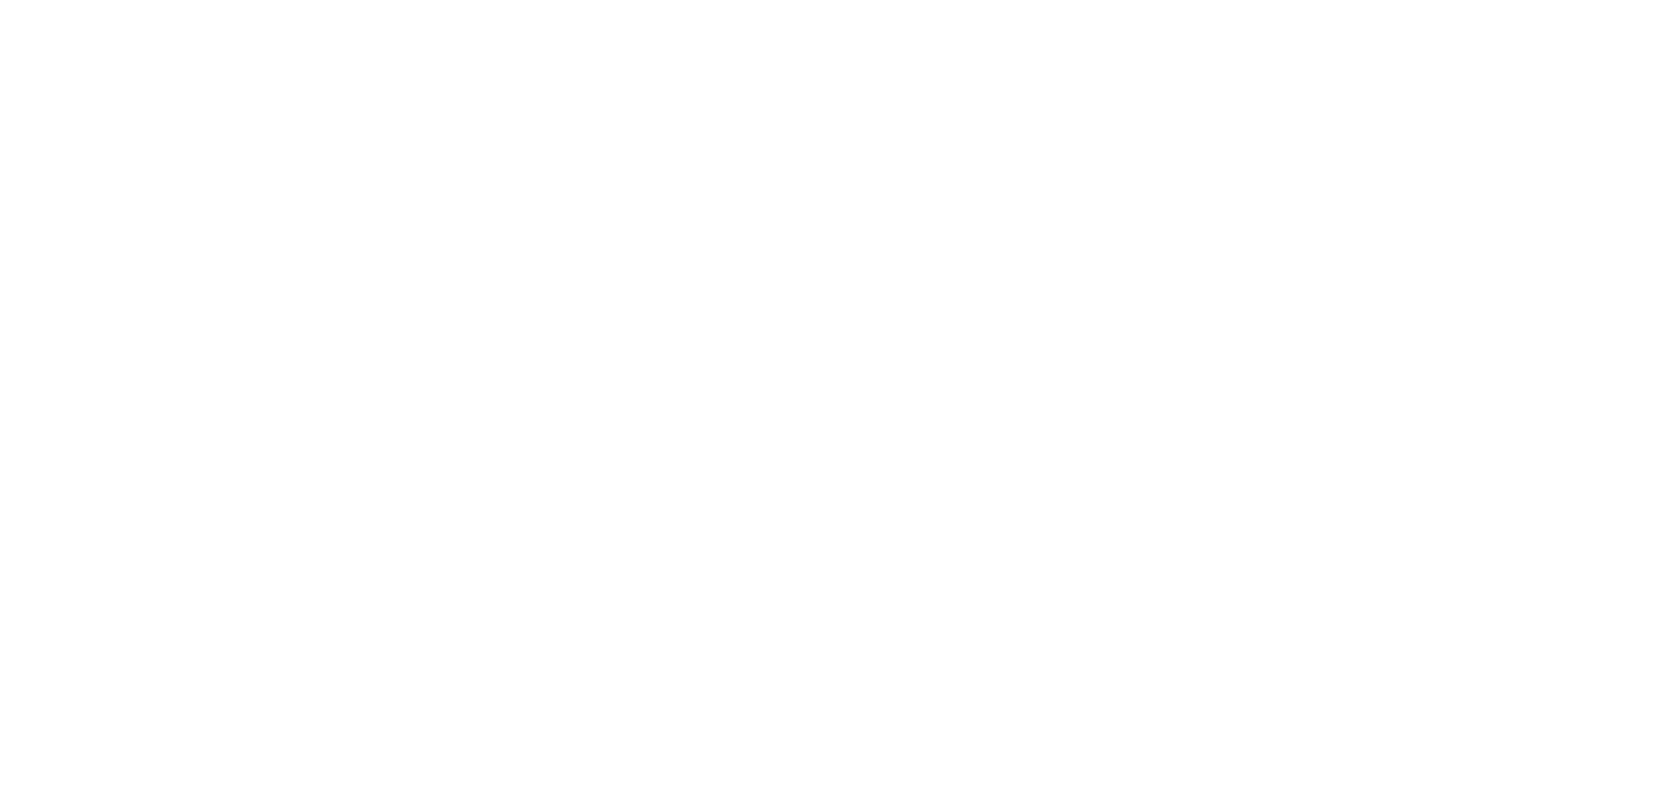 shawn james - logo - sept 2018 01 REVERSE.png